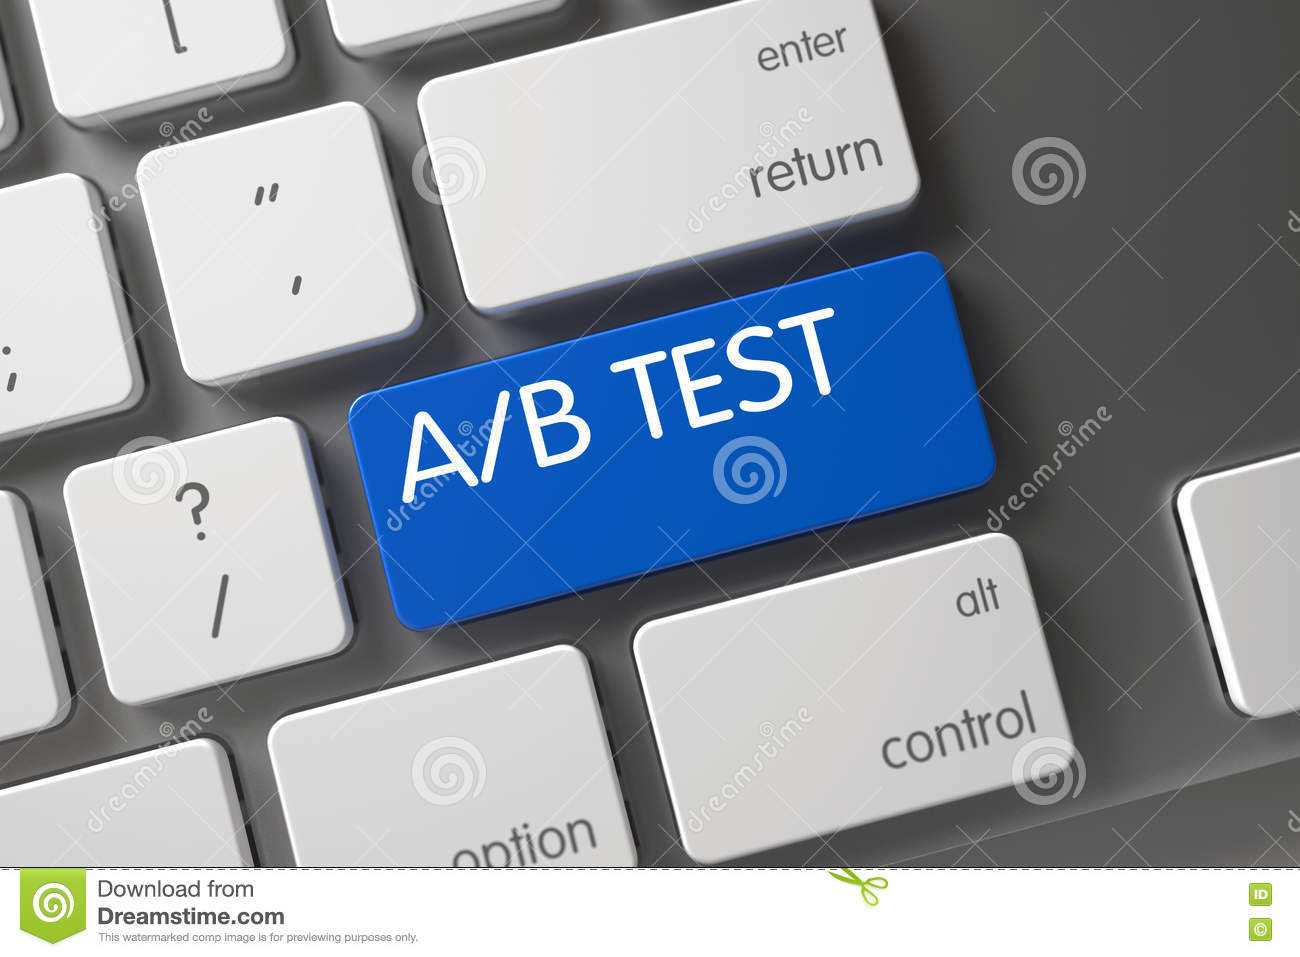 Ab Test Closeup Of Keyboard 3d Stock Photo Image Of Button Buyer 78362412